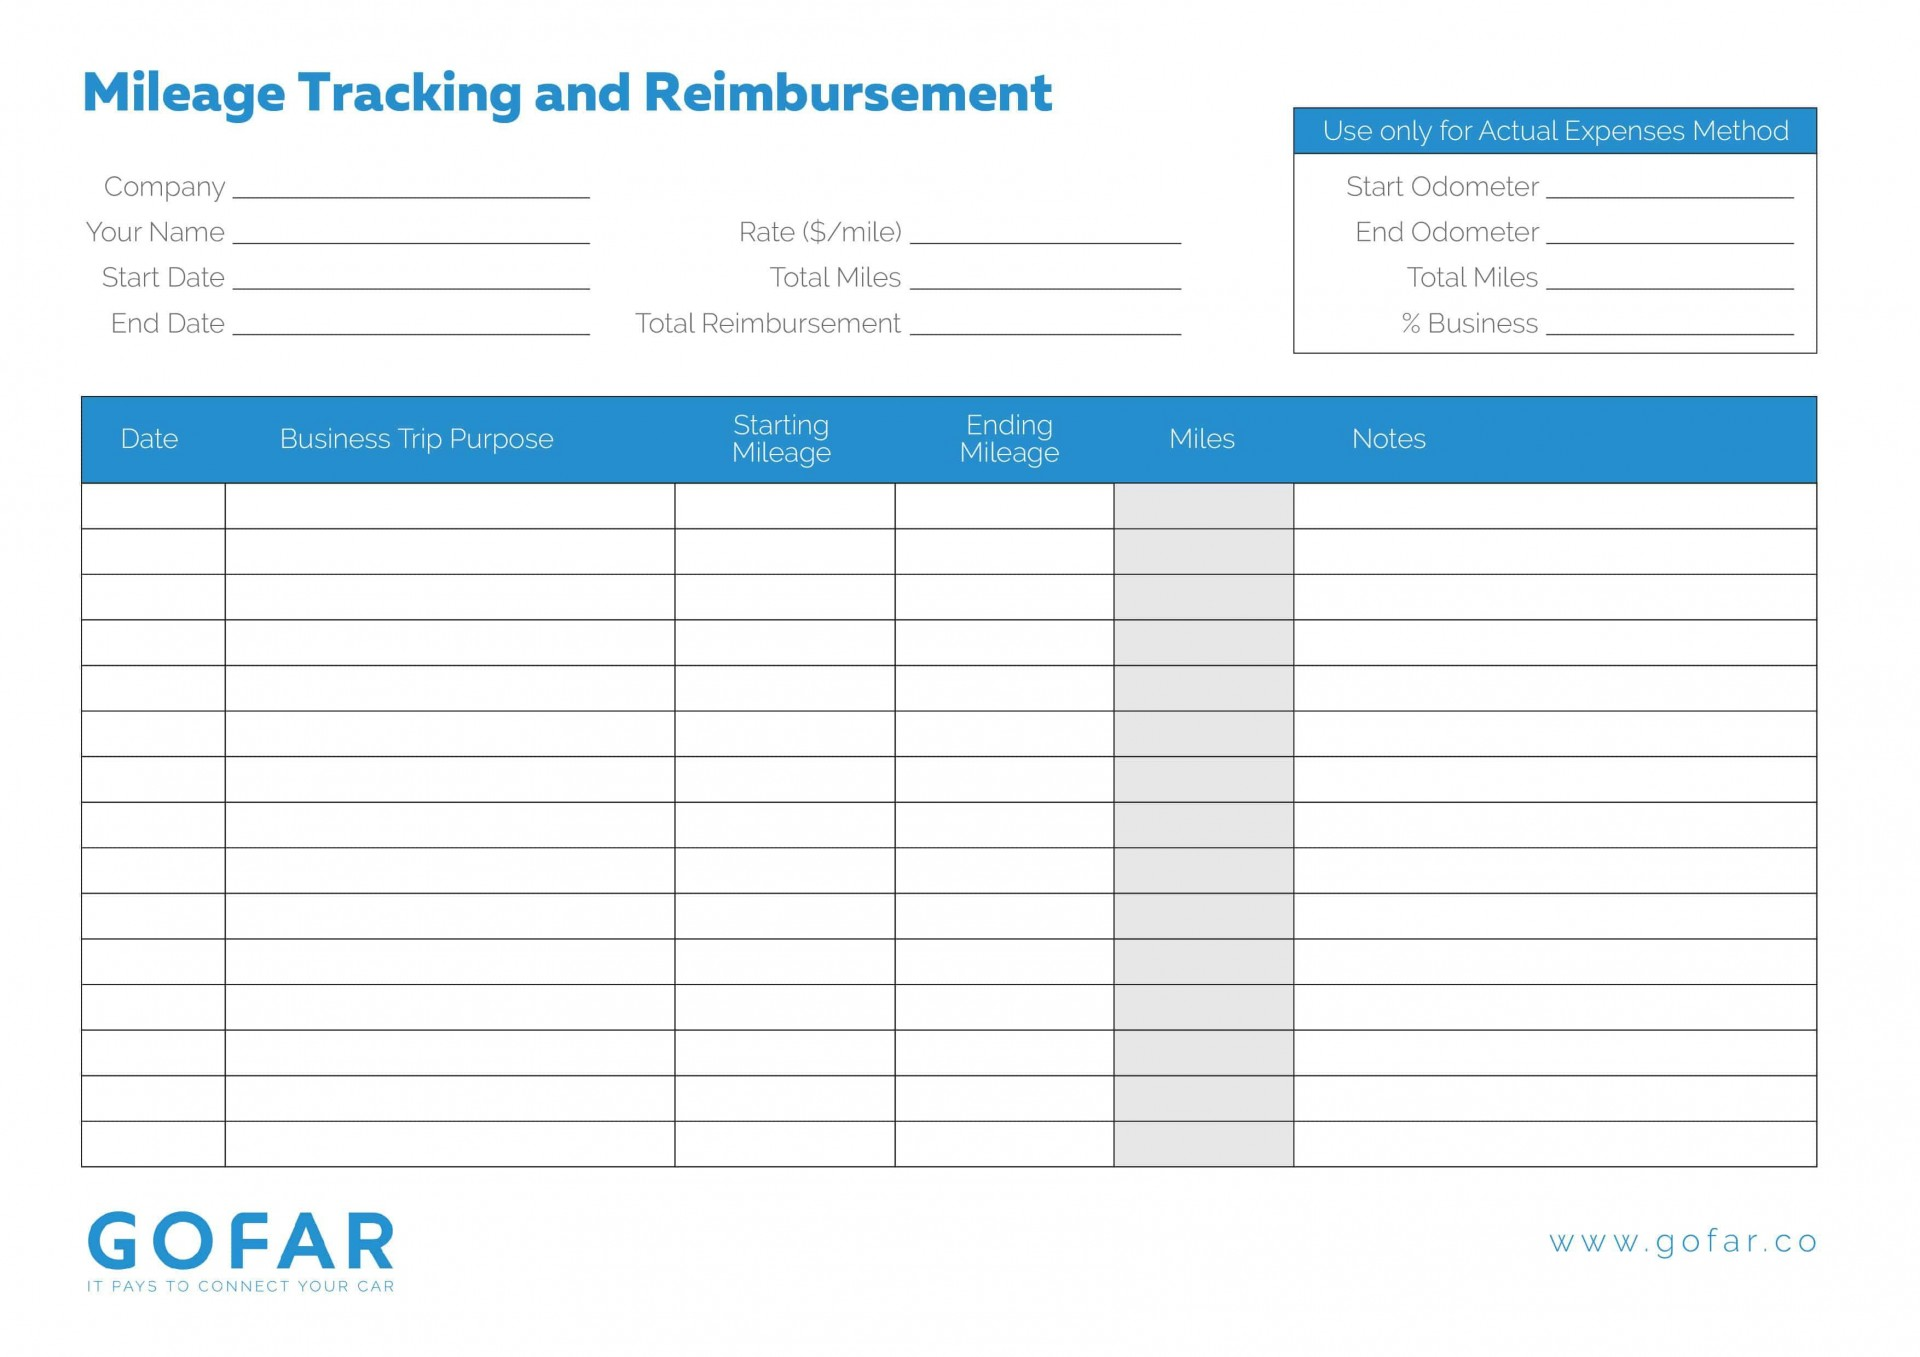 002 Incredible Mileage Tracking Excel Template Idea 1920